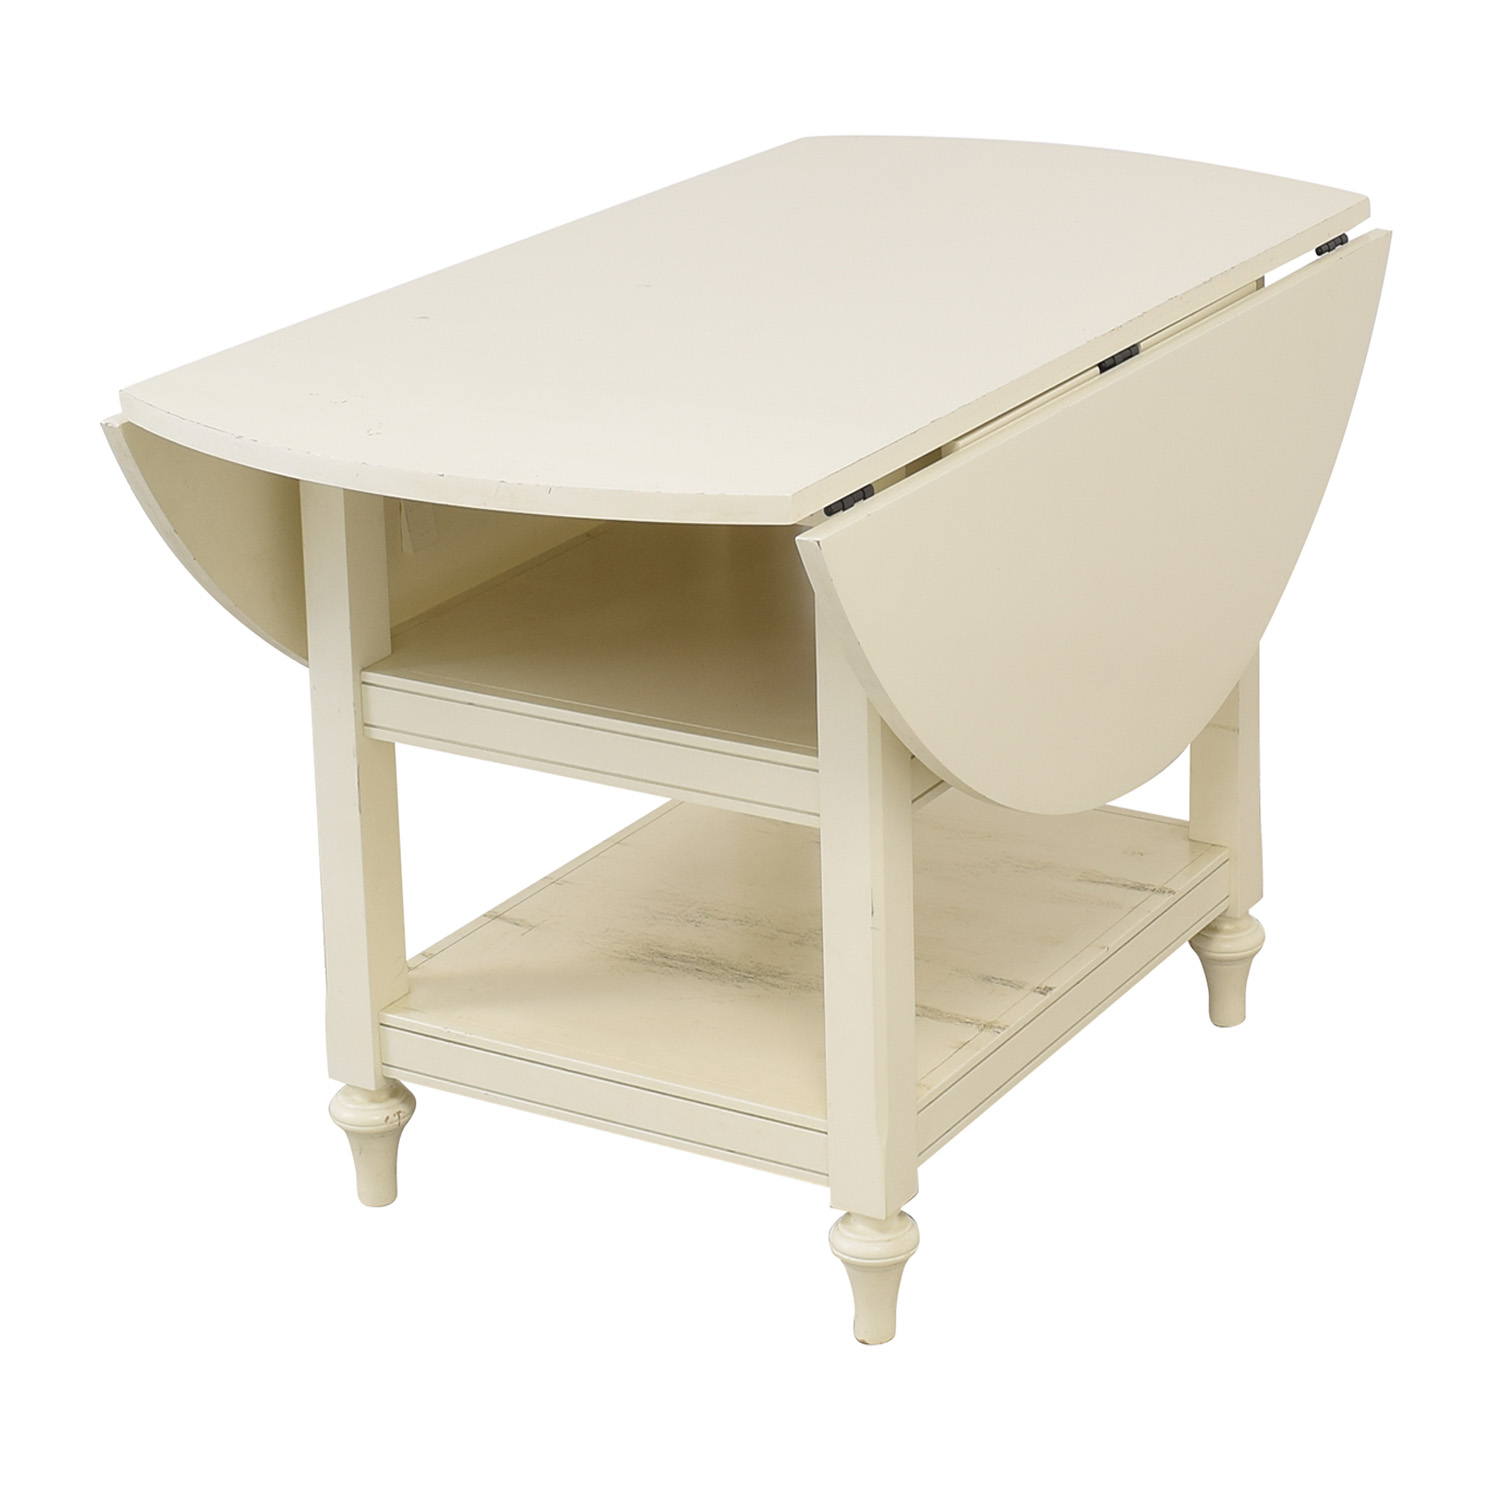 shop Pottery Barn Shayne Drop-Leaf Table Pottery Barn Tables